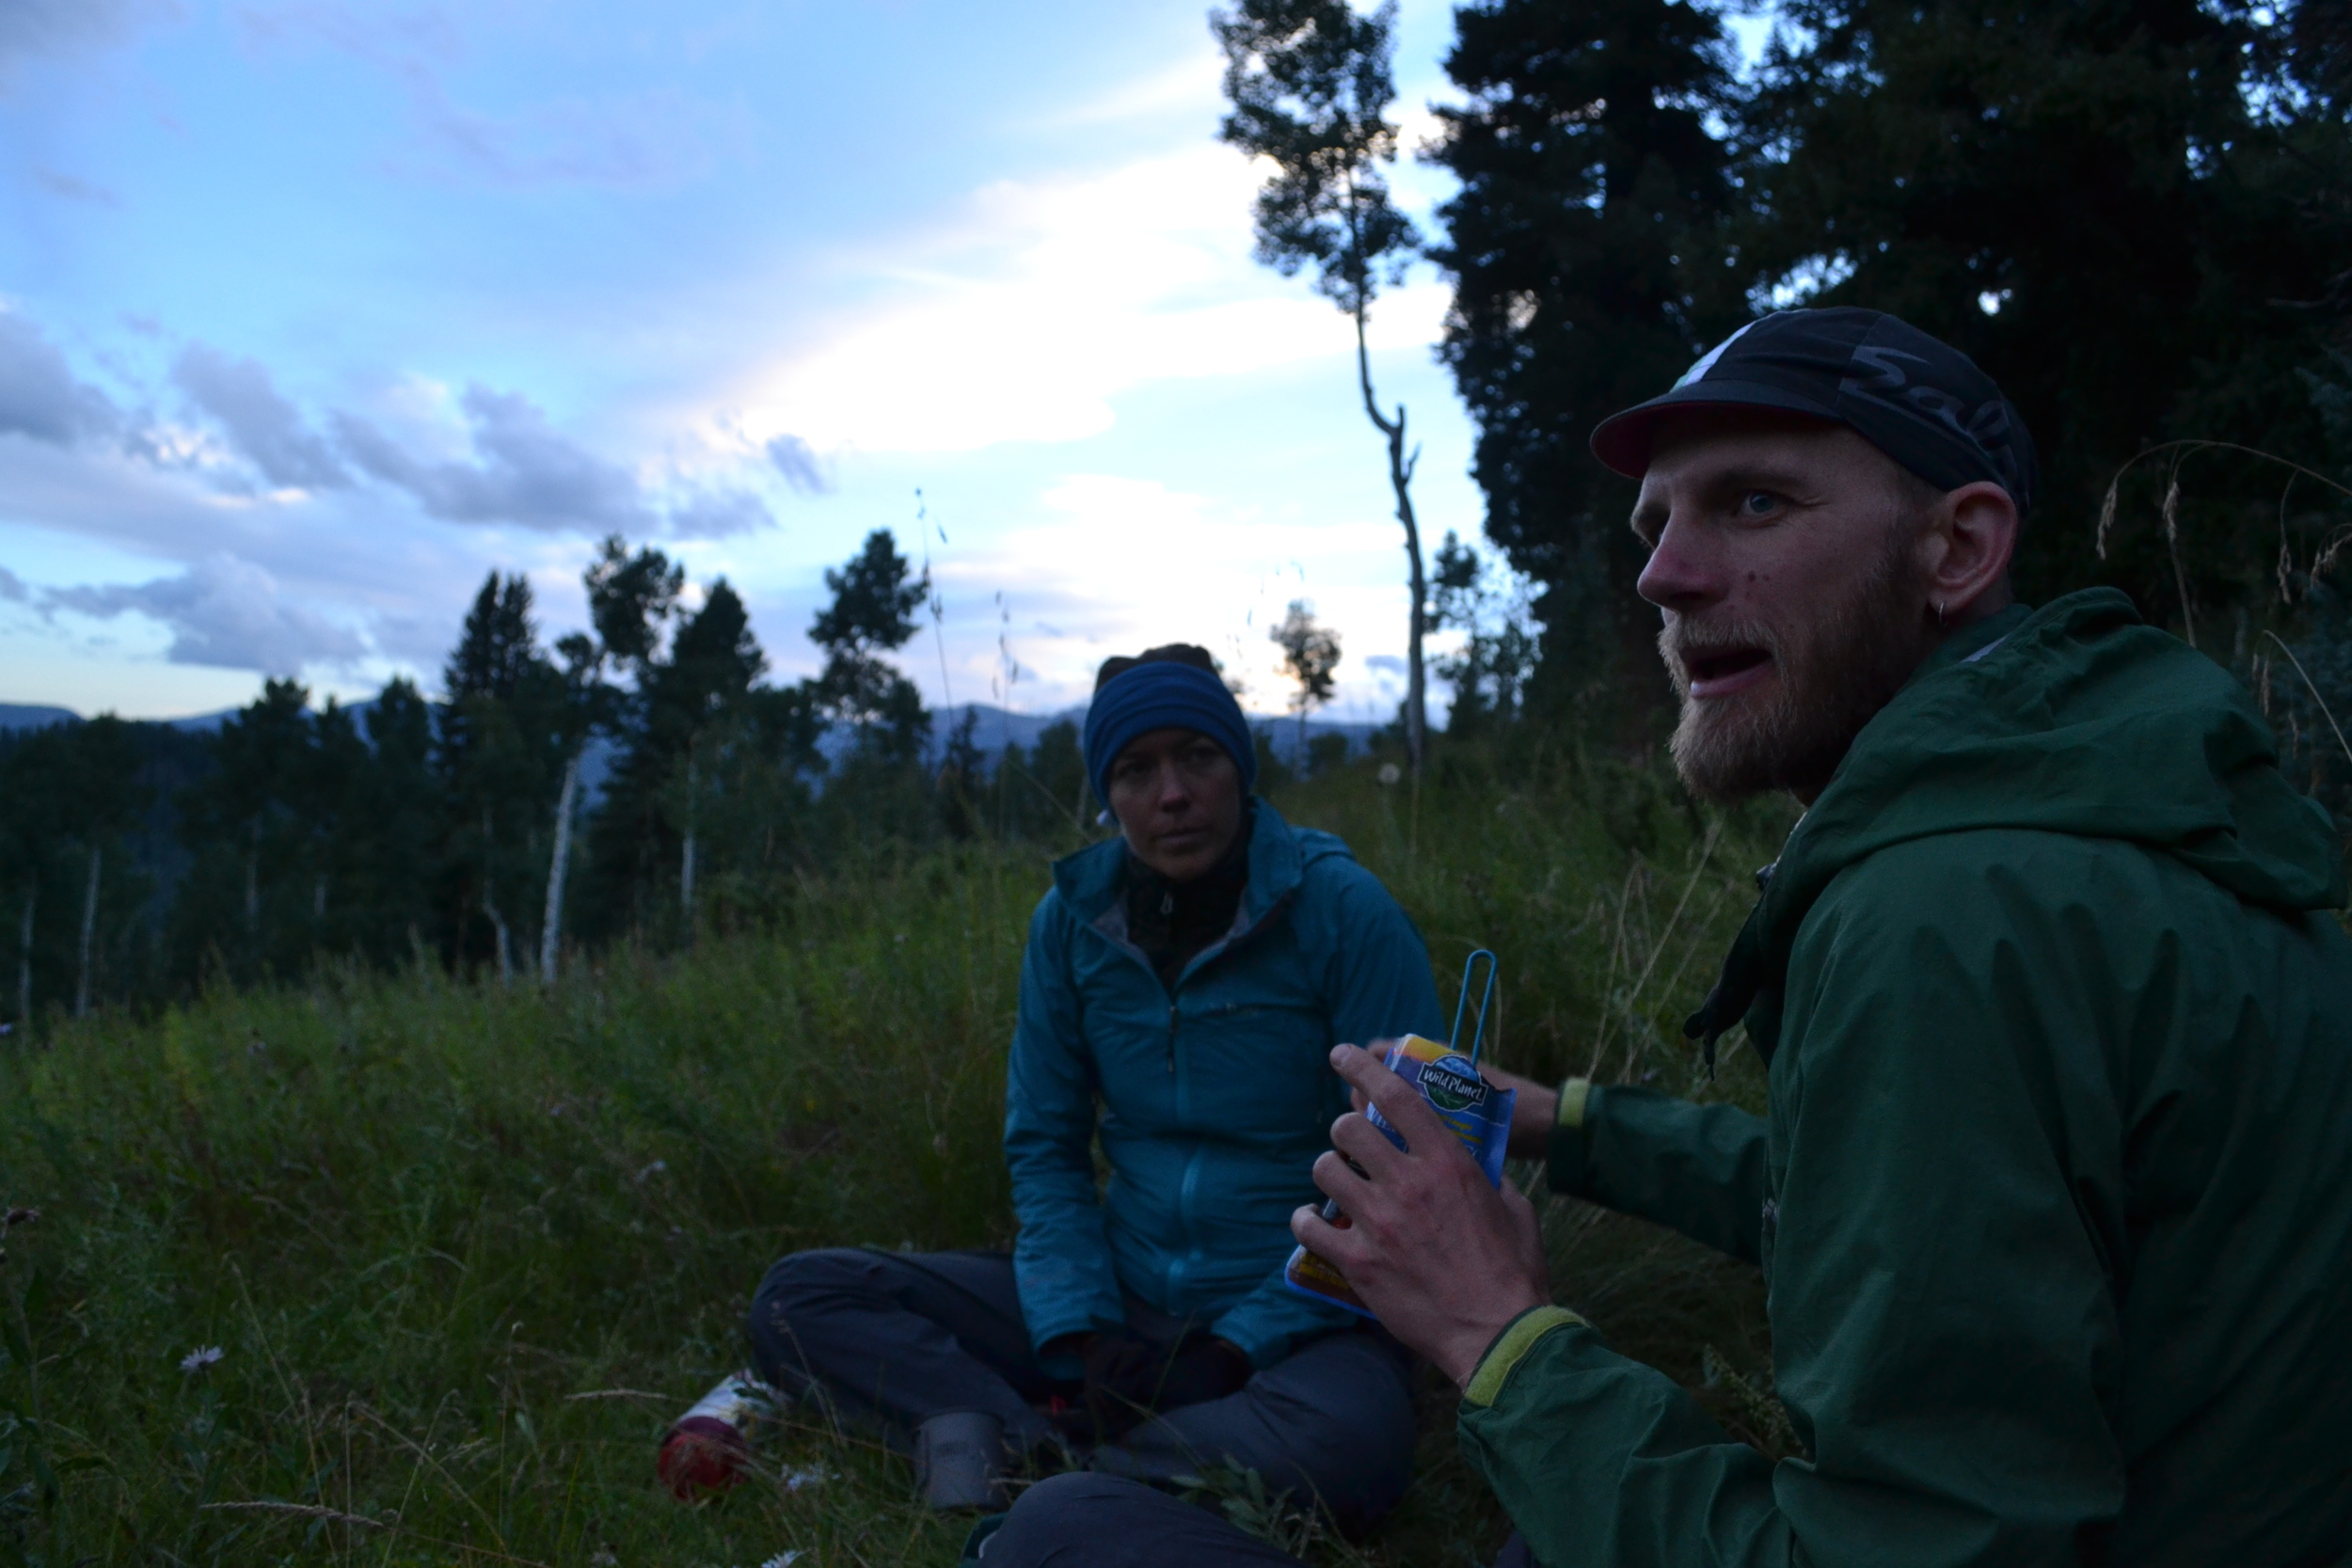 We pitched camp in a beautiful meadow, ate dinner, told stories, and admired the best Milky Way showing I've seen in literally years and years. (Photo by Brian Hanson)